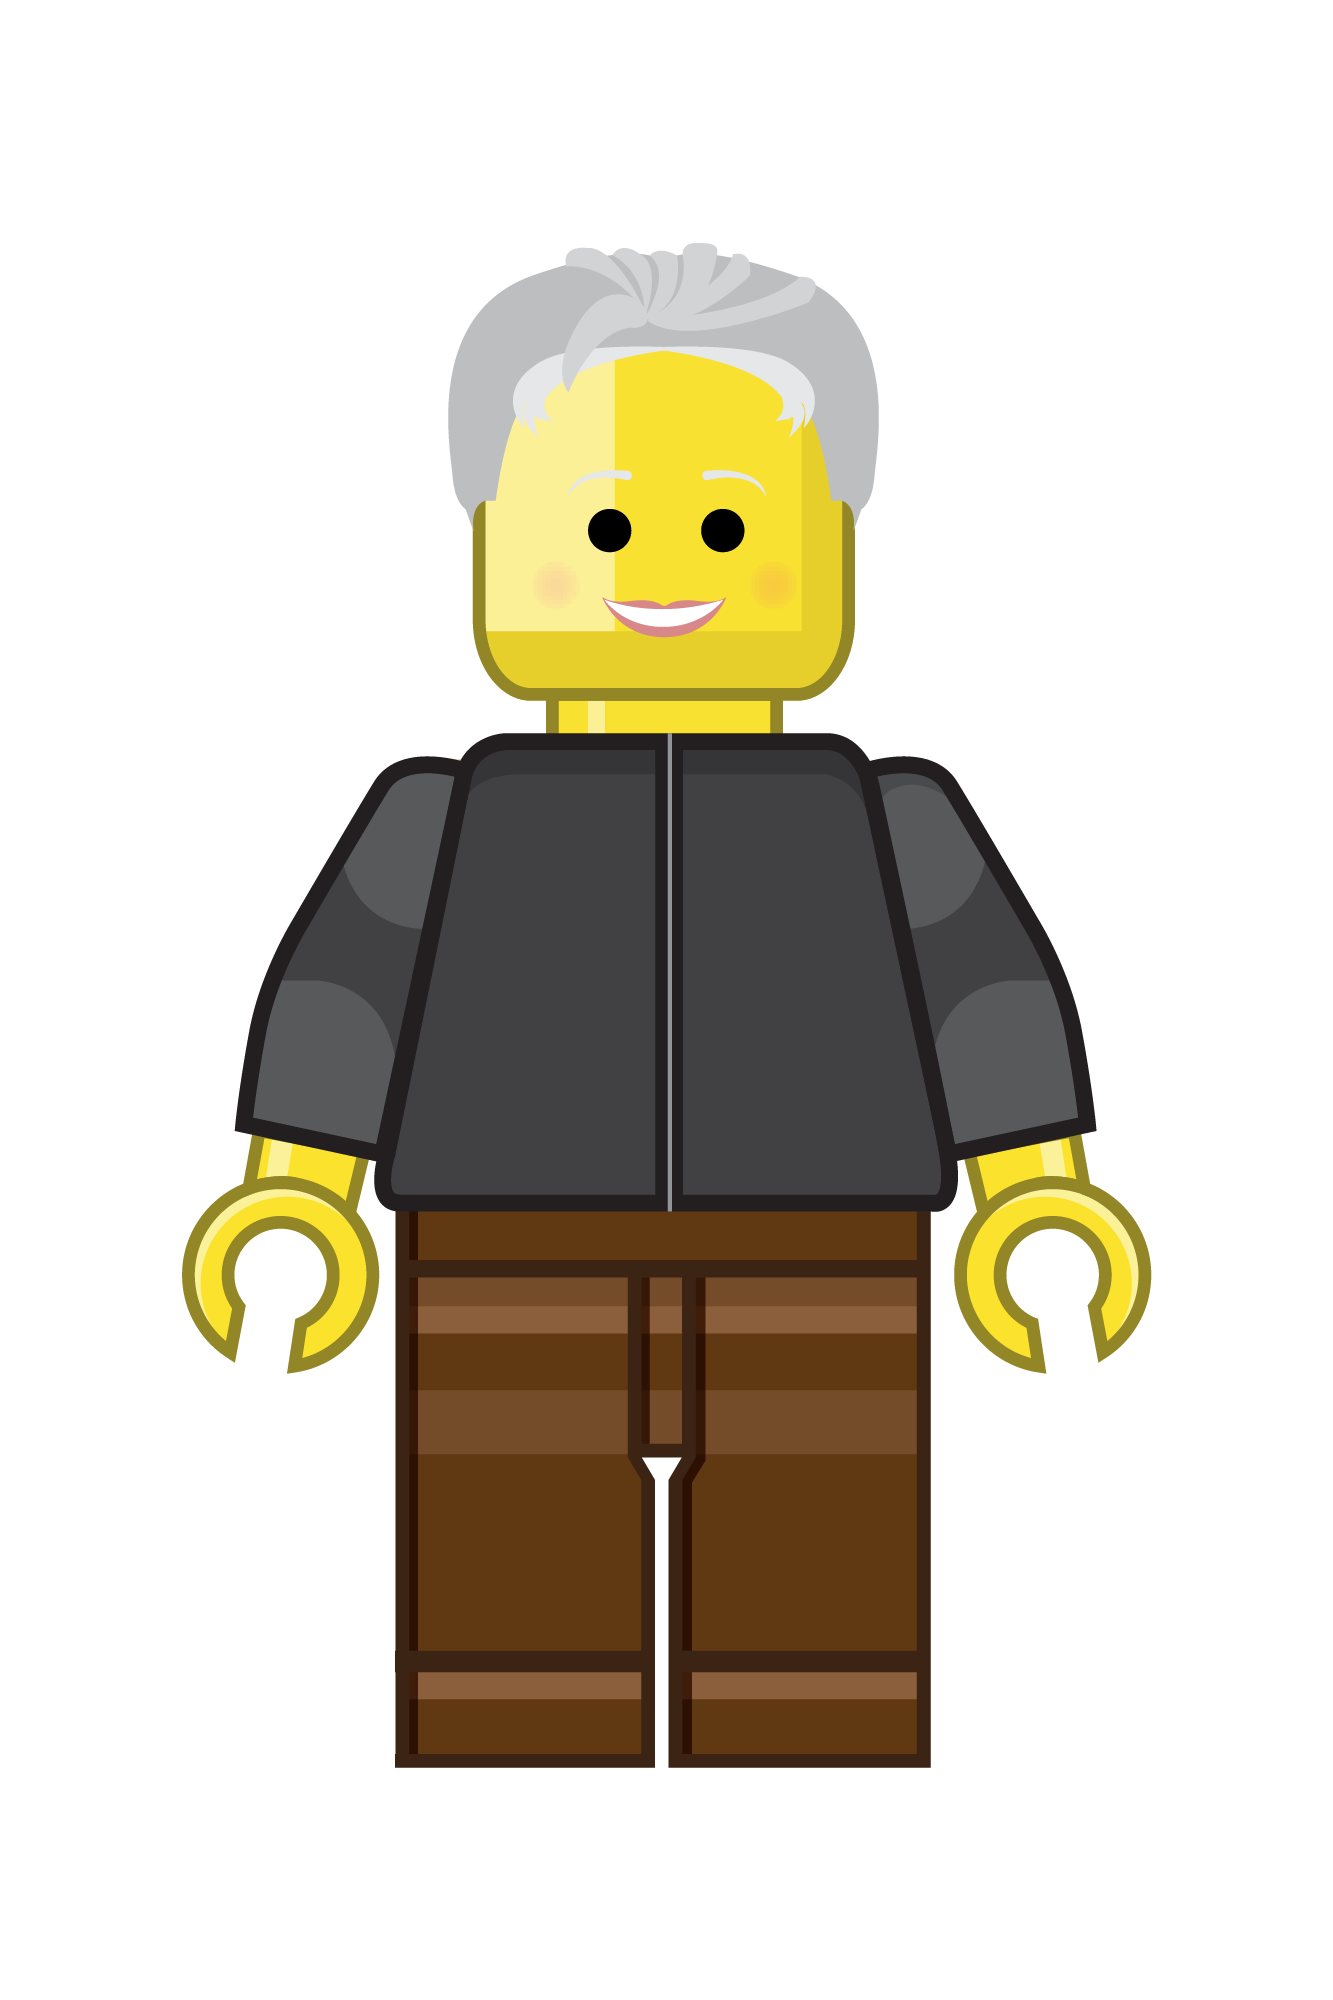 bITD_lego_Betty.png